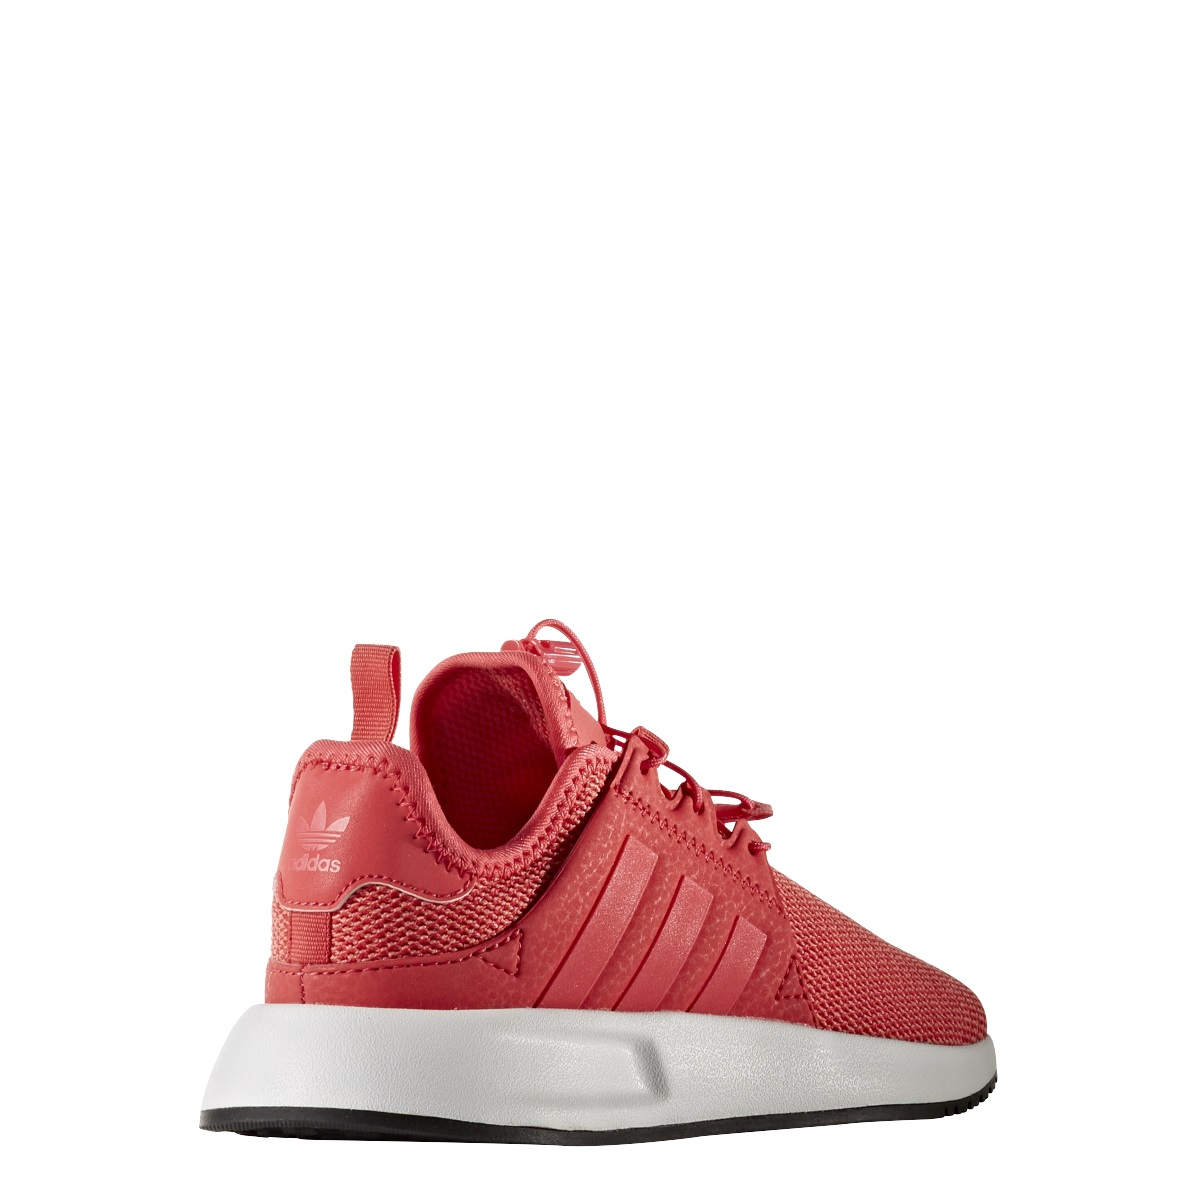 adidas originals x plr c sneaker kinder schuhe rot bb2615 sport klingenmaier. Black Bedroom Furniture Sets. Home Design Ideas